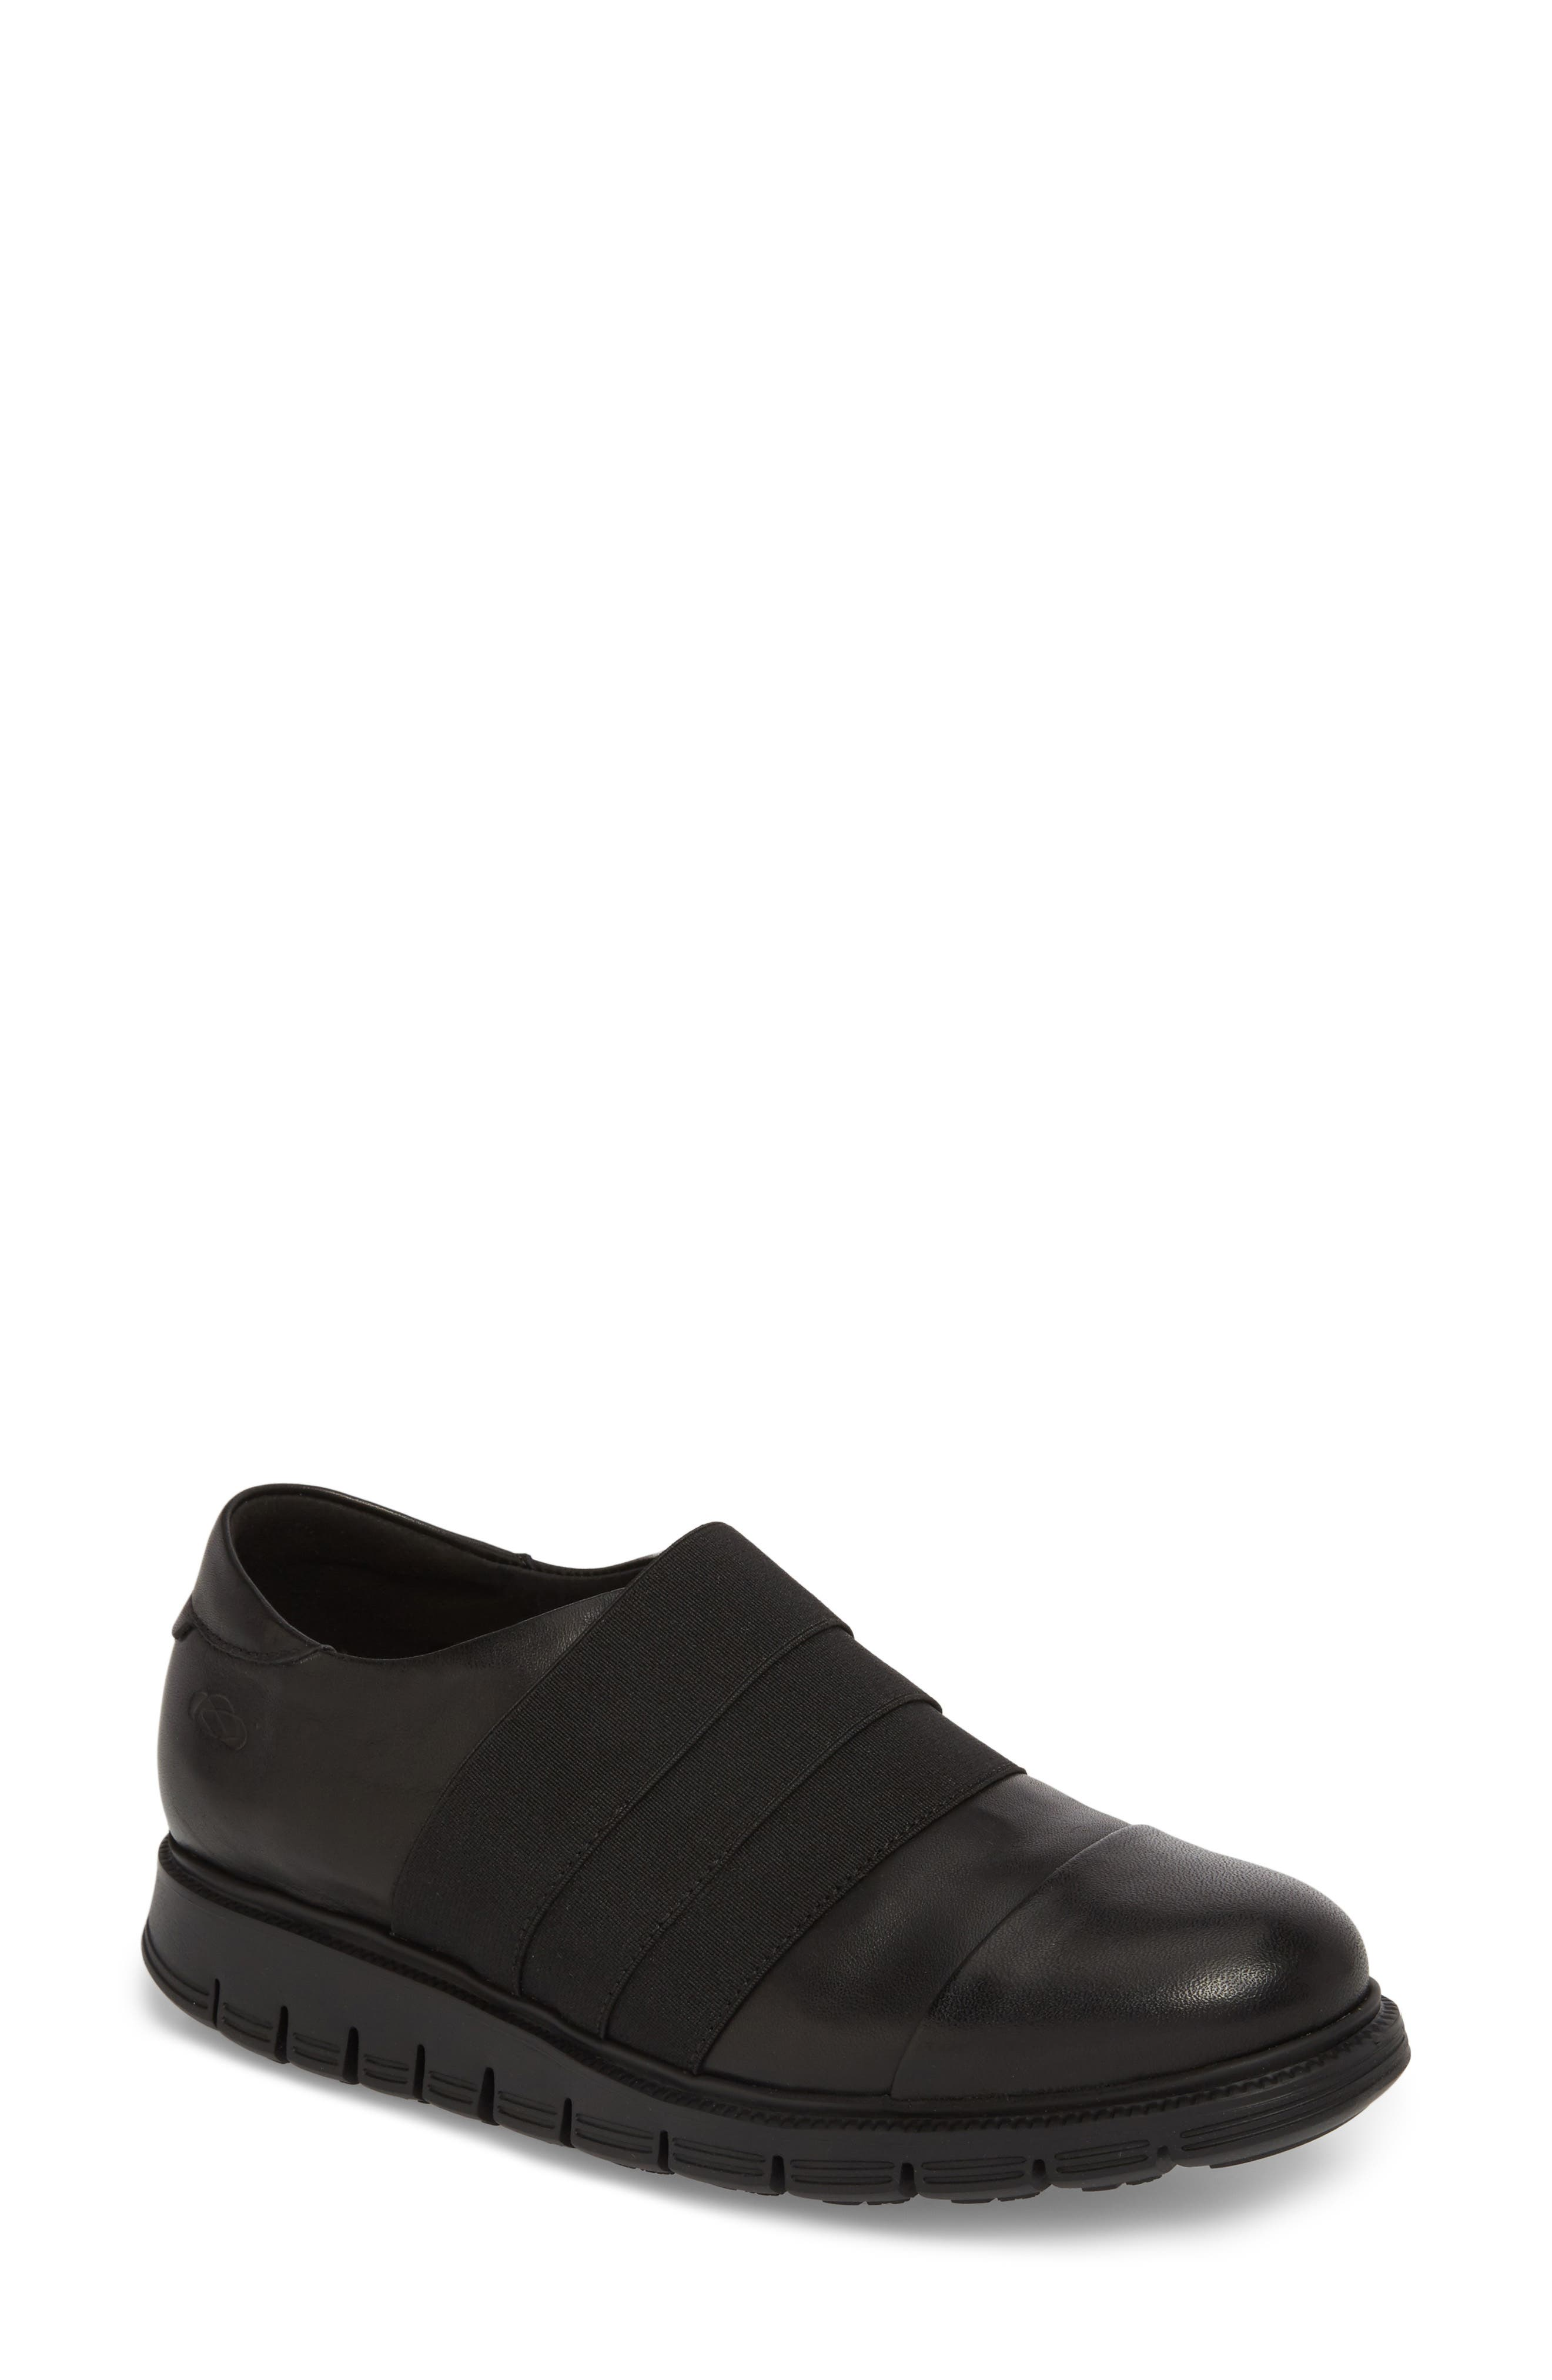 Grace Slip-On Sneaker,                             Main thumbnail 1, color,                             Black Leather